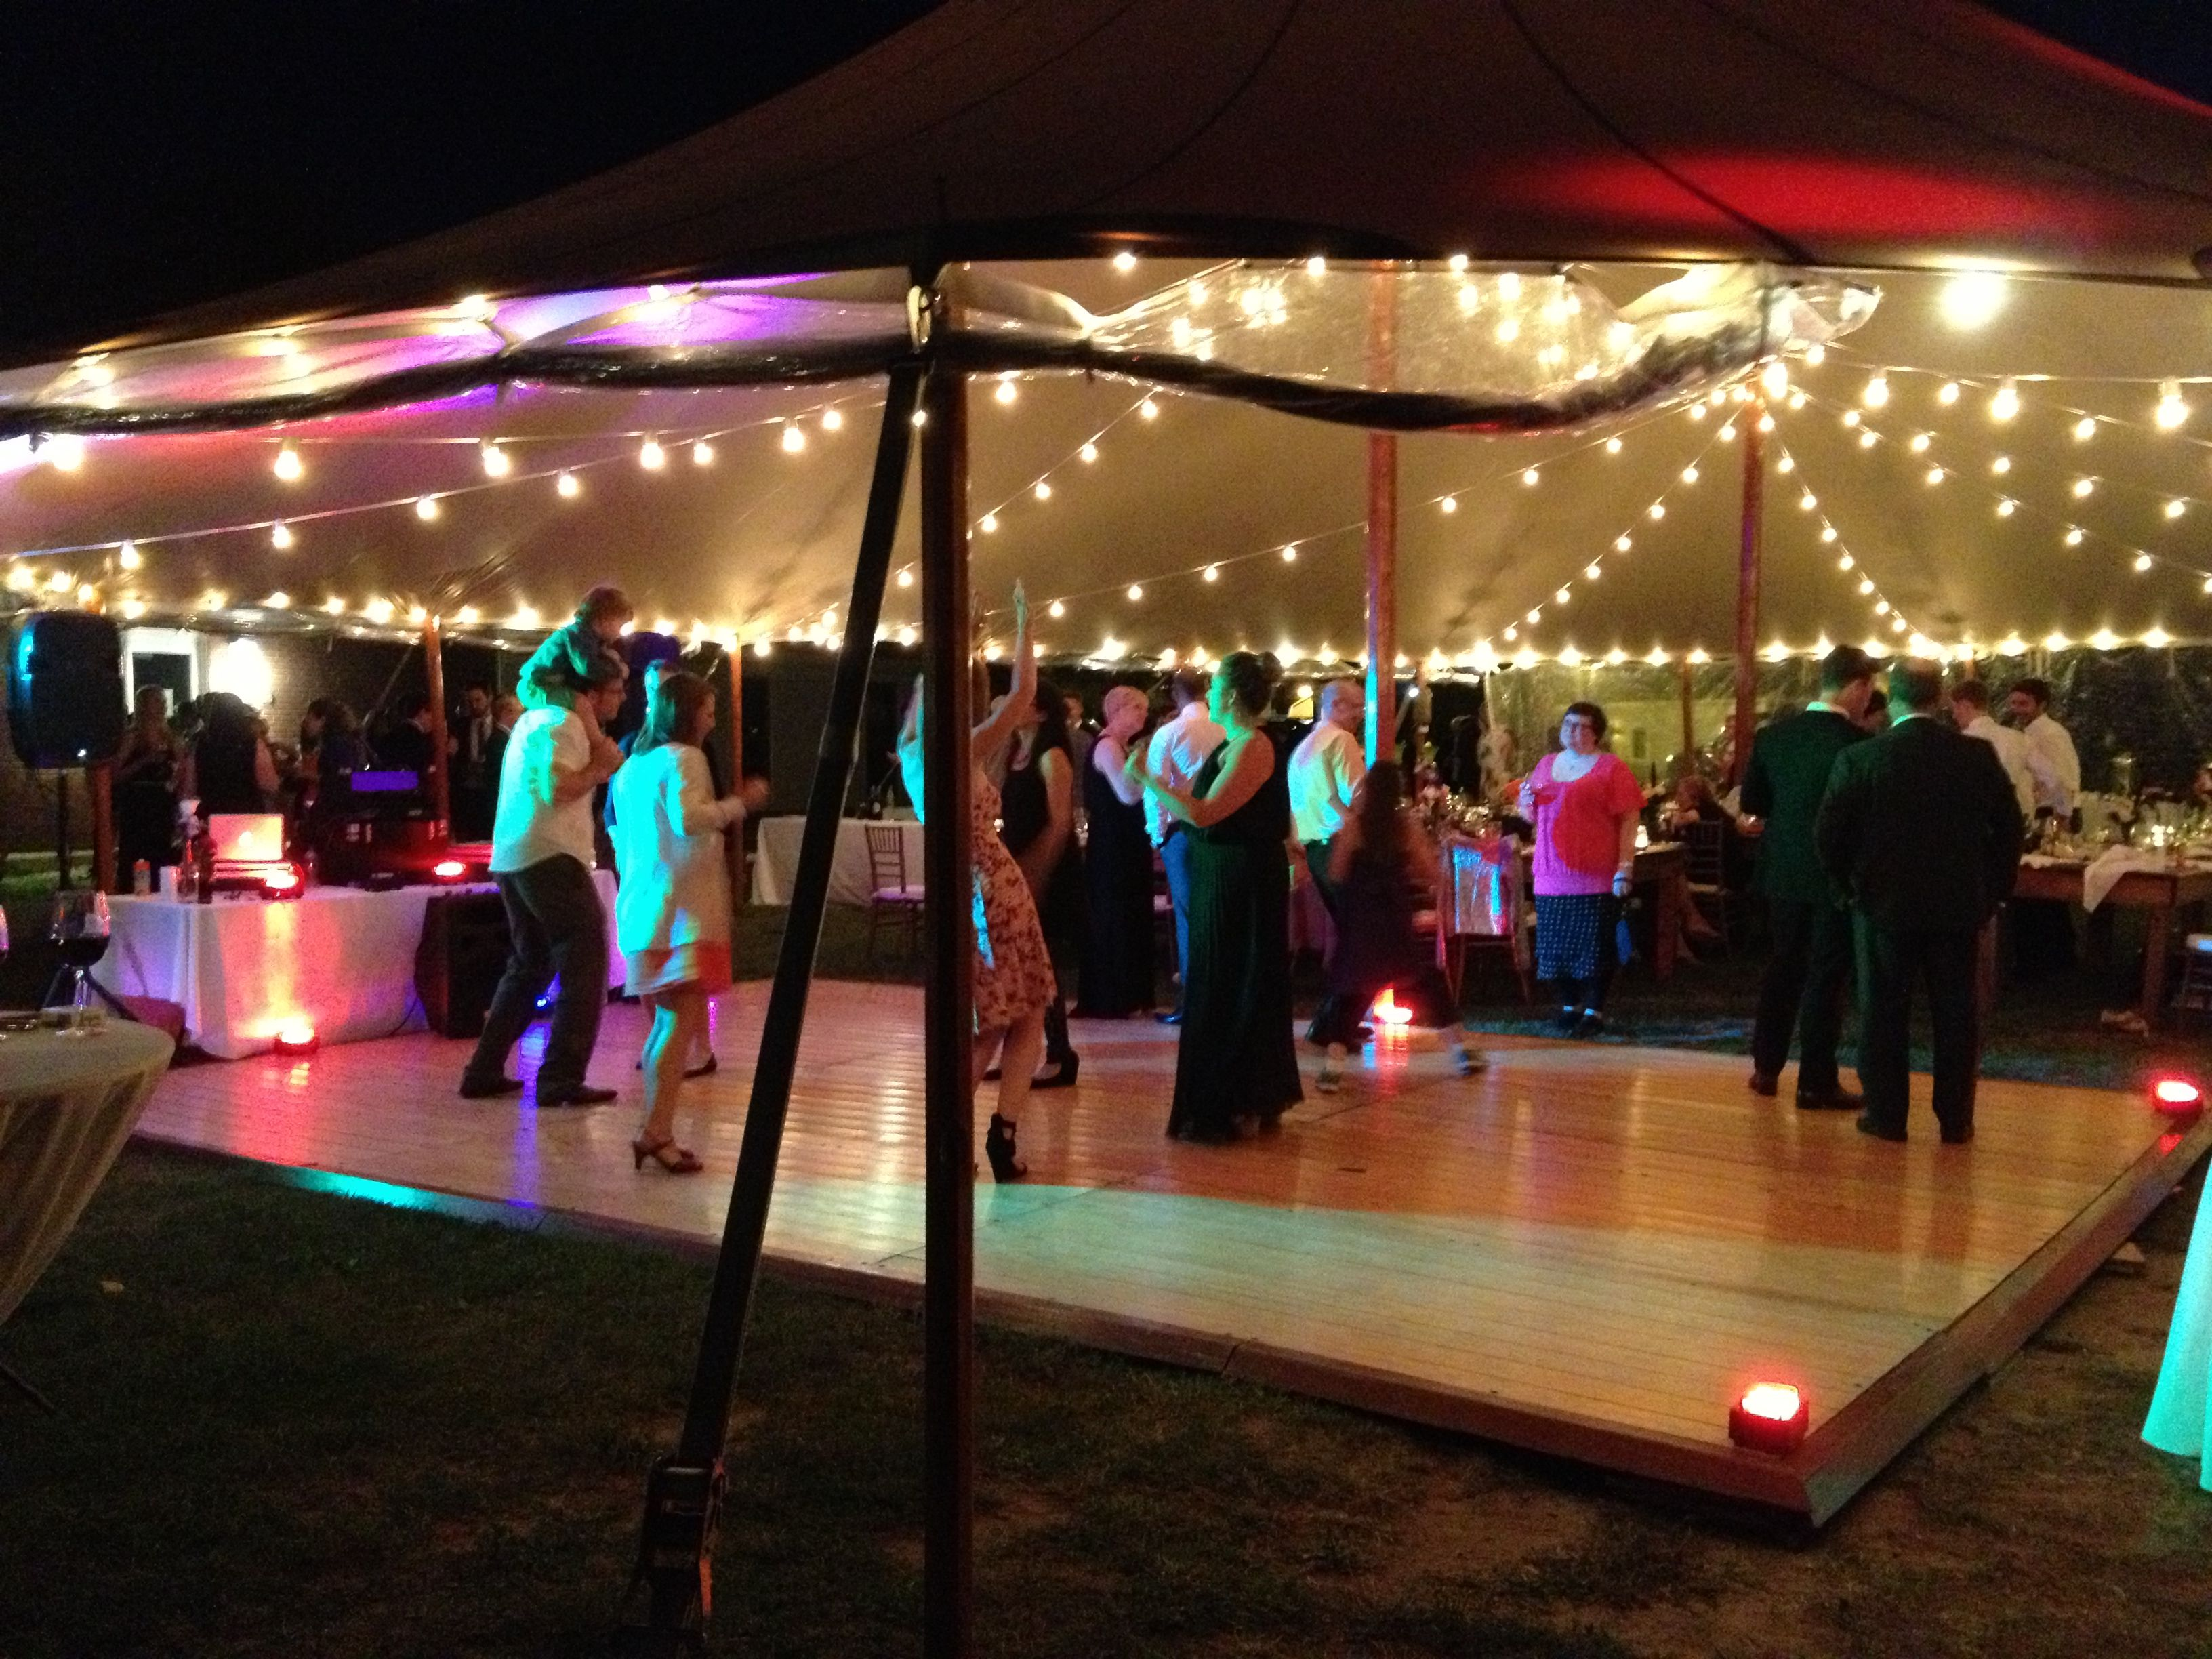 Southern Maine Community College wedding on 08/24/13 with Sperry ...